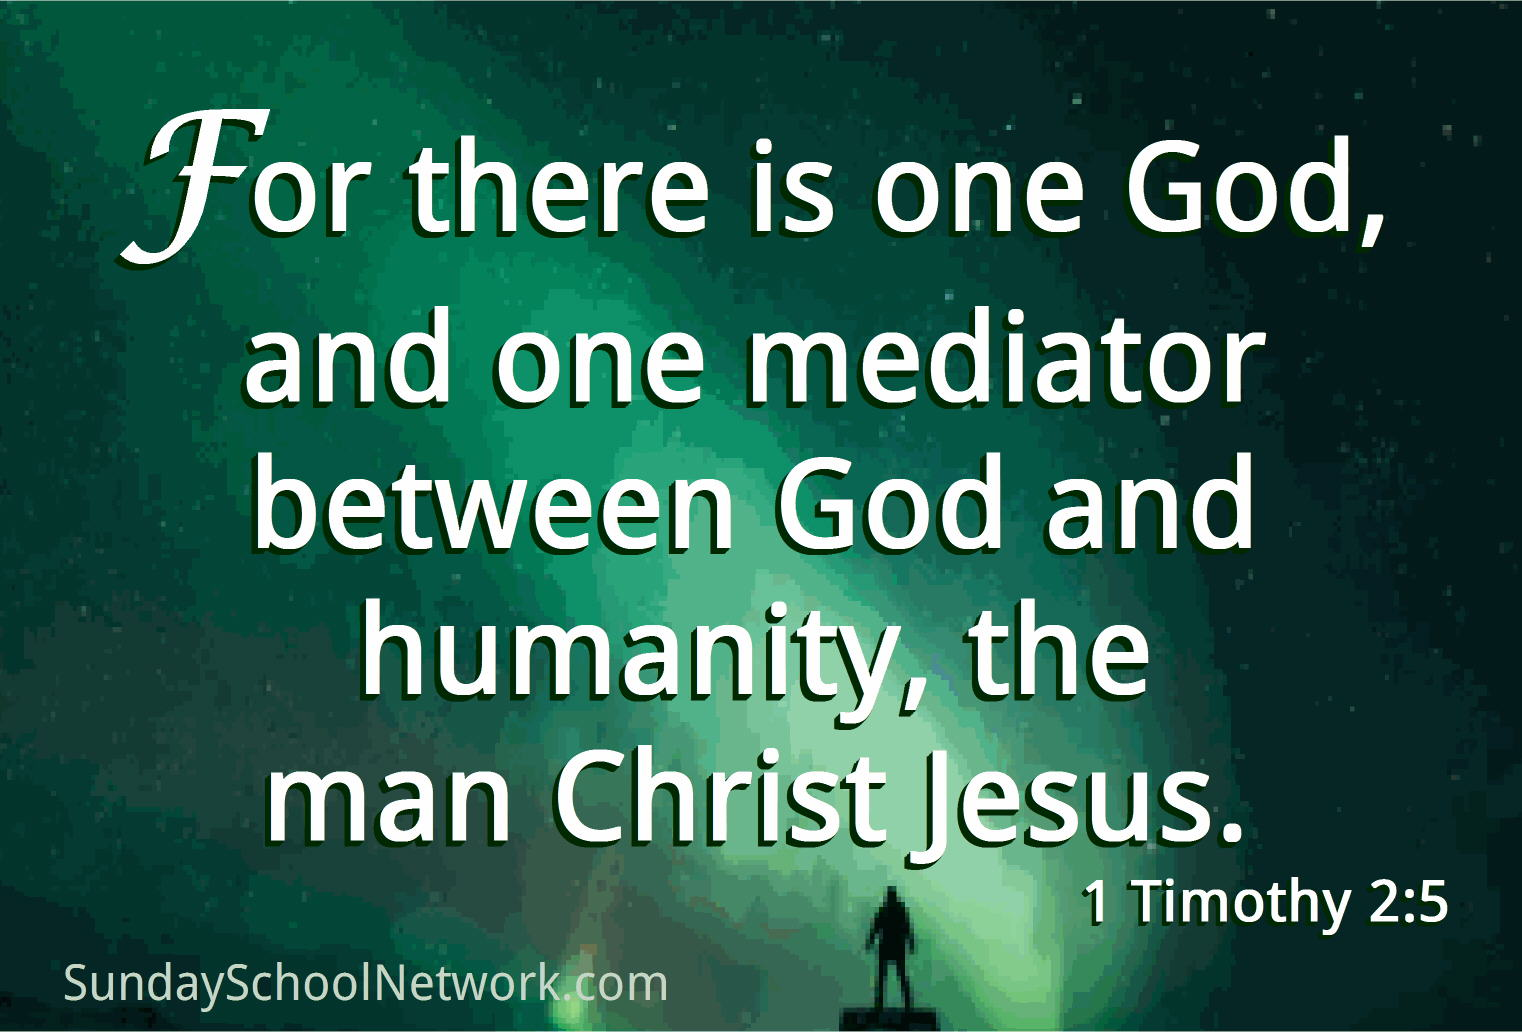 one mediator between God and man, Christ Jesus